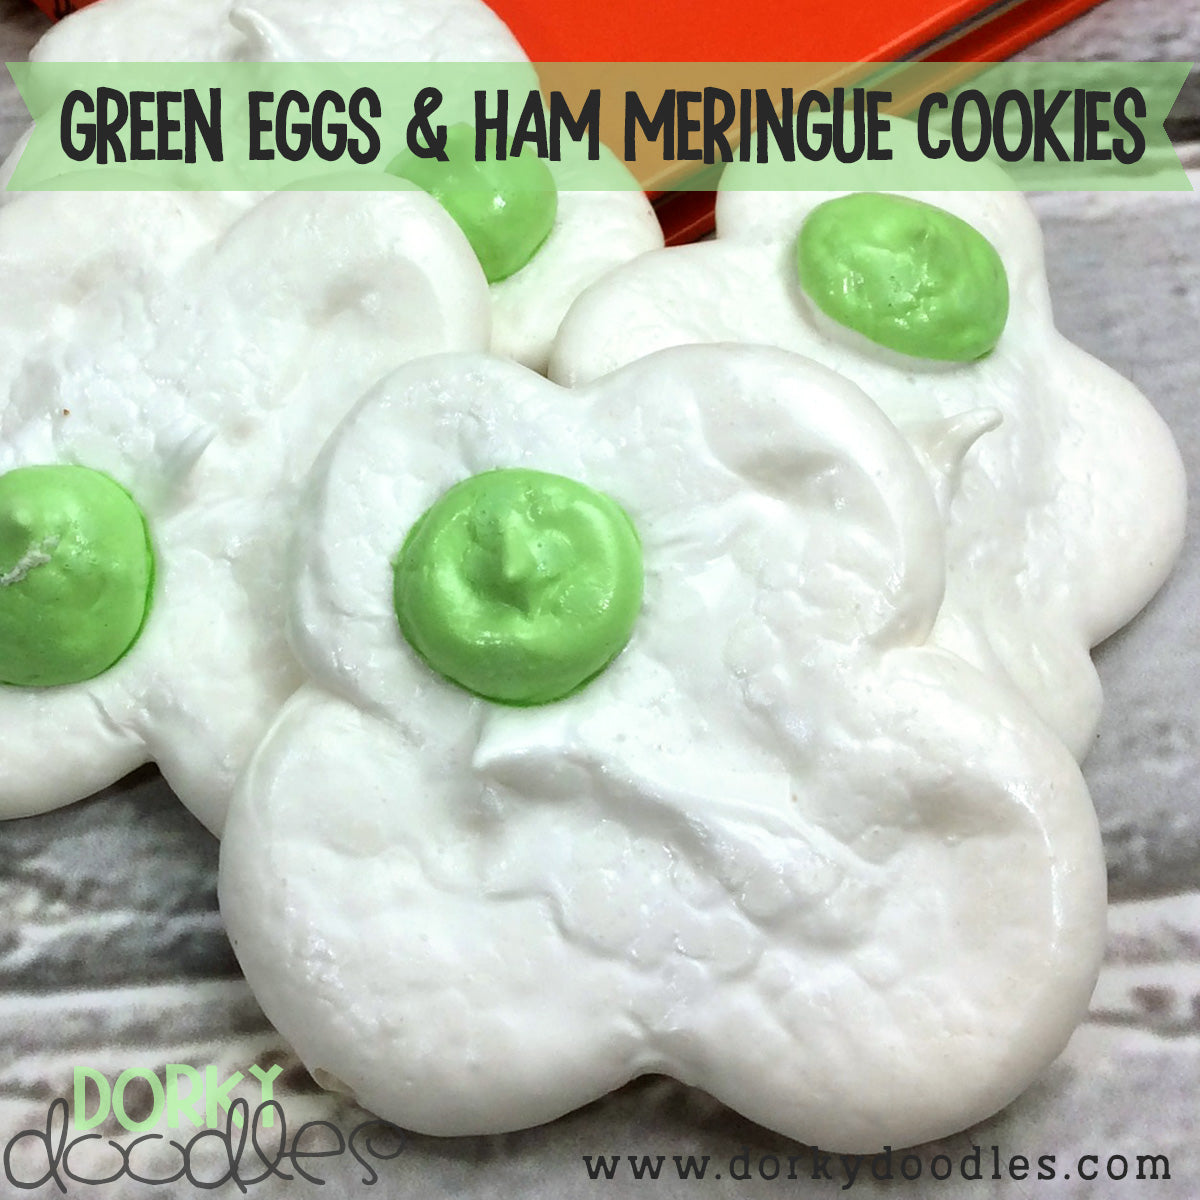 Dr Seuss Green Eggs and Ham Meringue Cookies